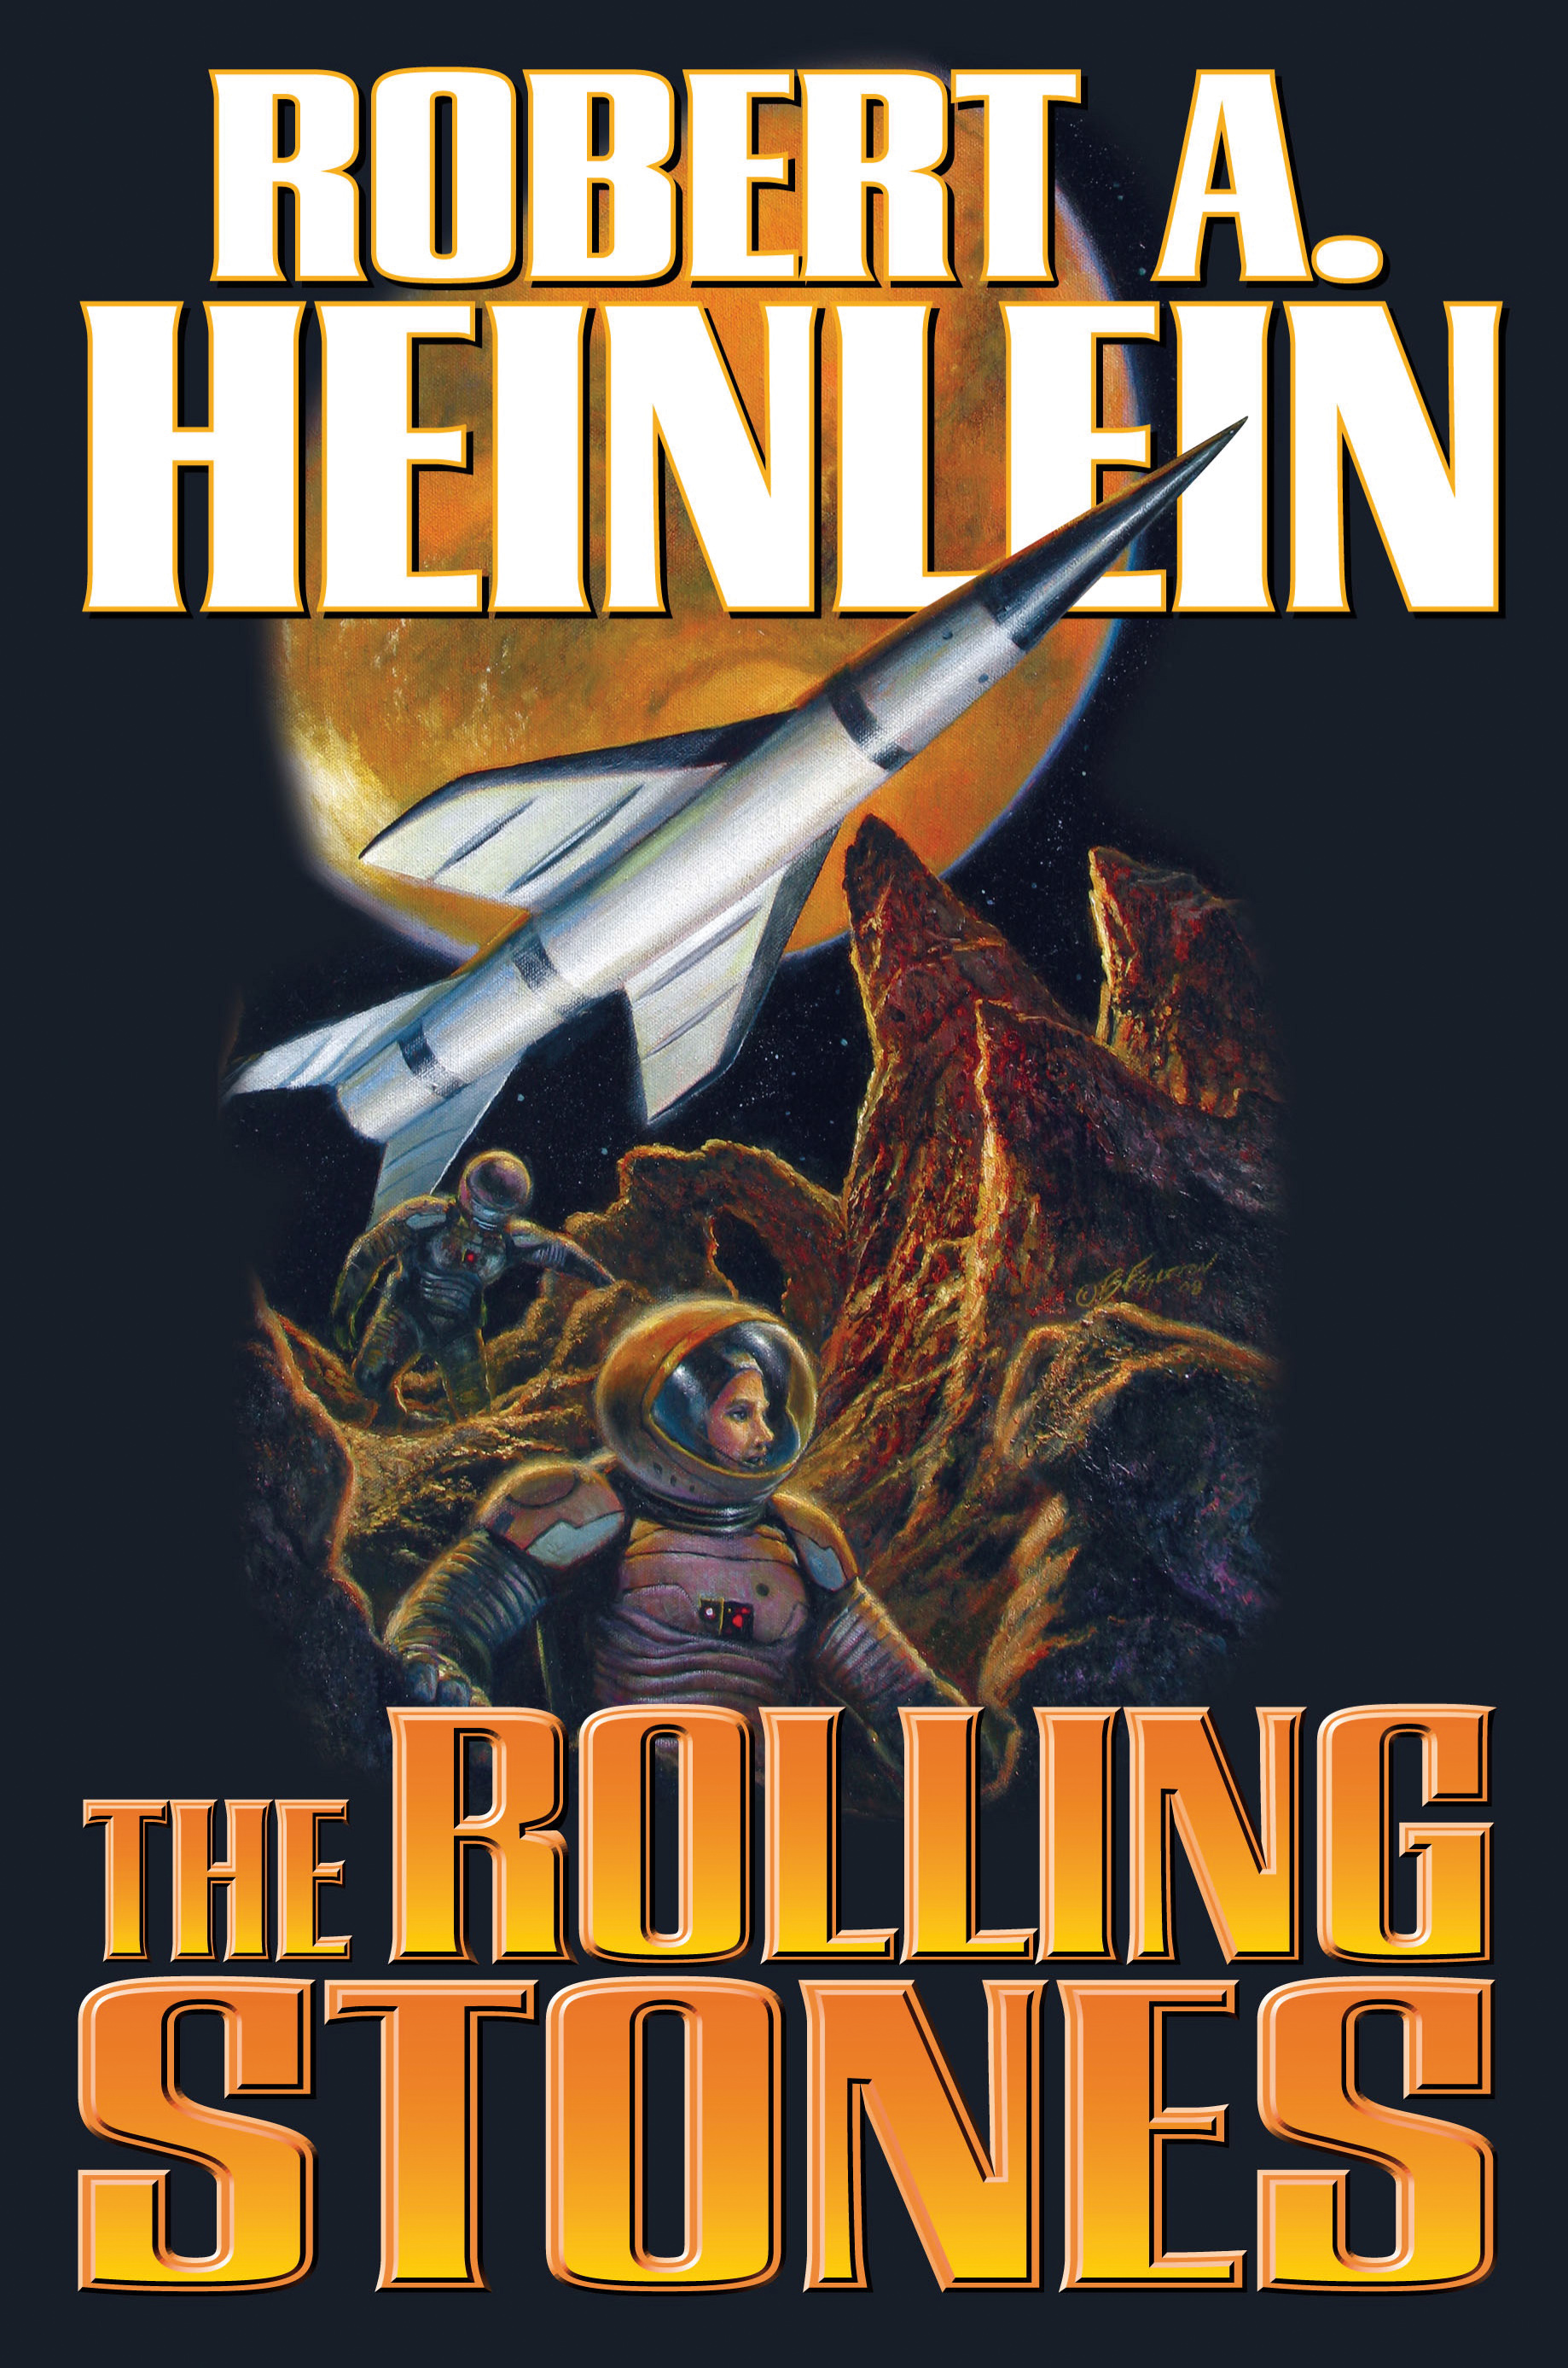 the literary works of robert heinlein Robert a heinlein biography - robert anson heinlein (july 7, 1907 may 8, 1988) was one of the most influential authors in the science fiction genre - robert a heinlein biography and list of works - robert a heinlein books.